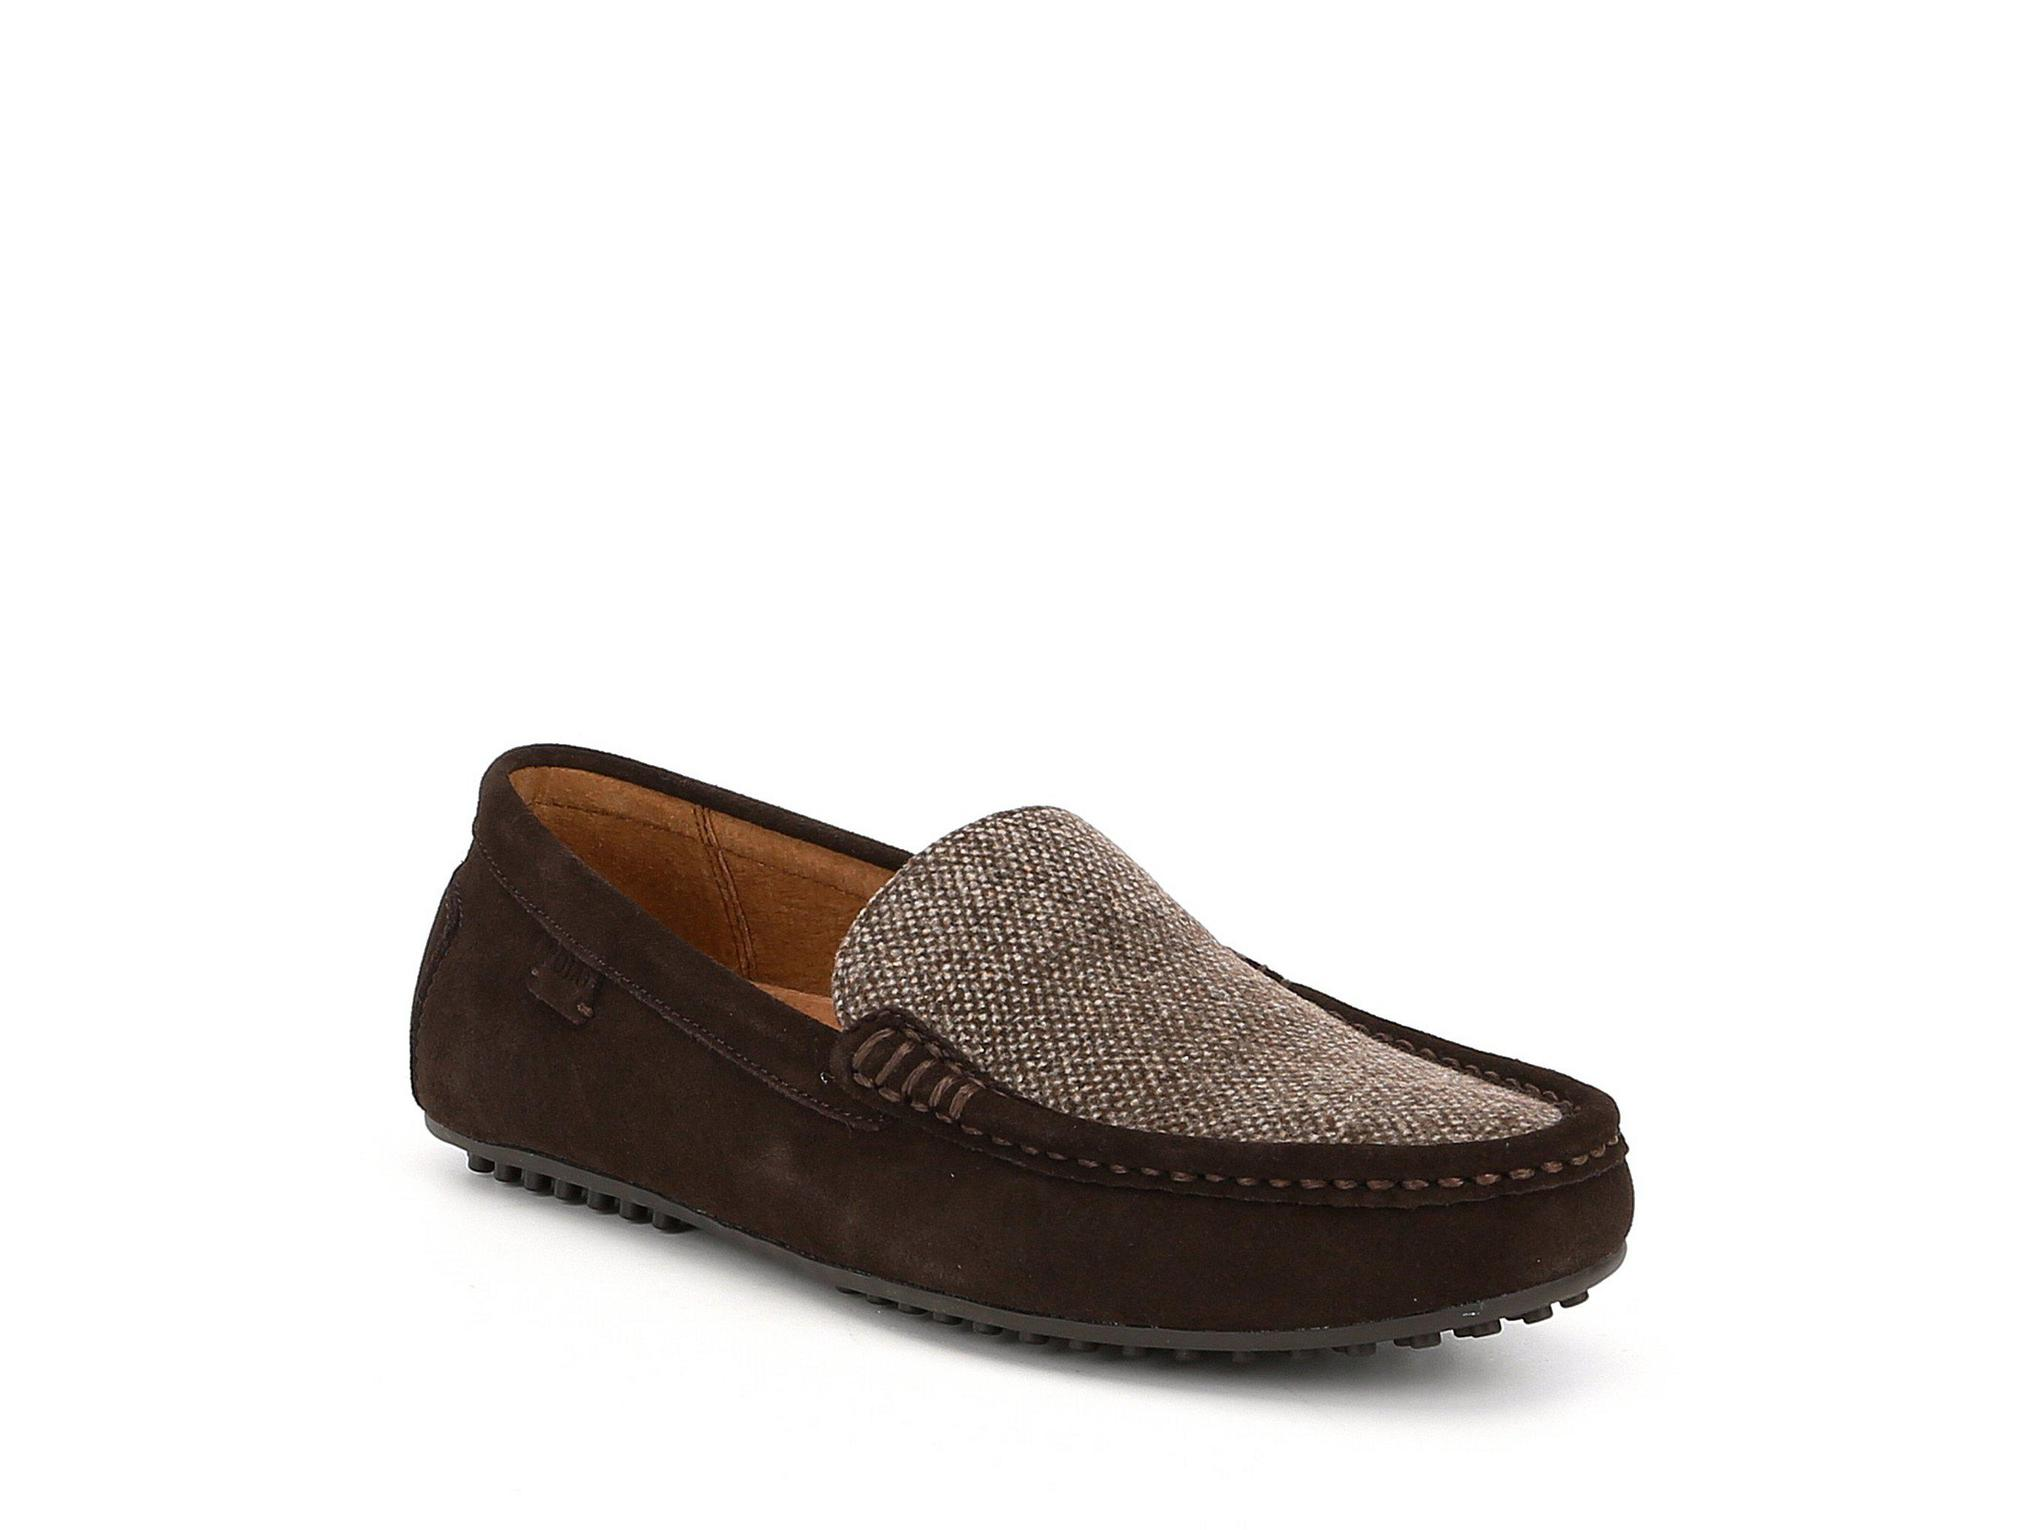 bb8c7617d14 Polo Ralph Lauren Mens Woodley Leather Closed Toe Slip On